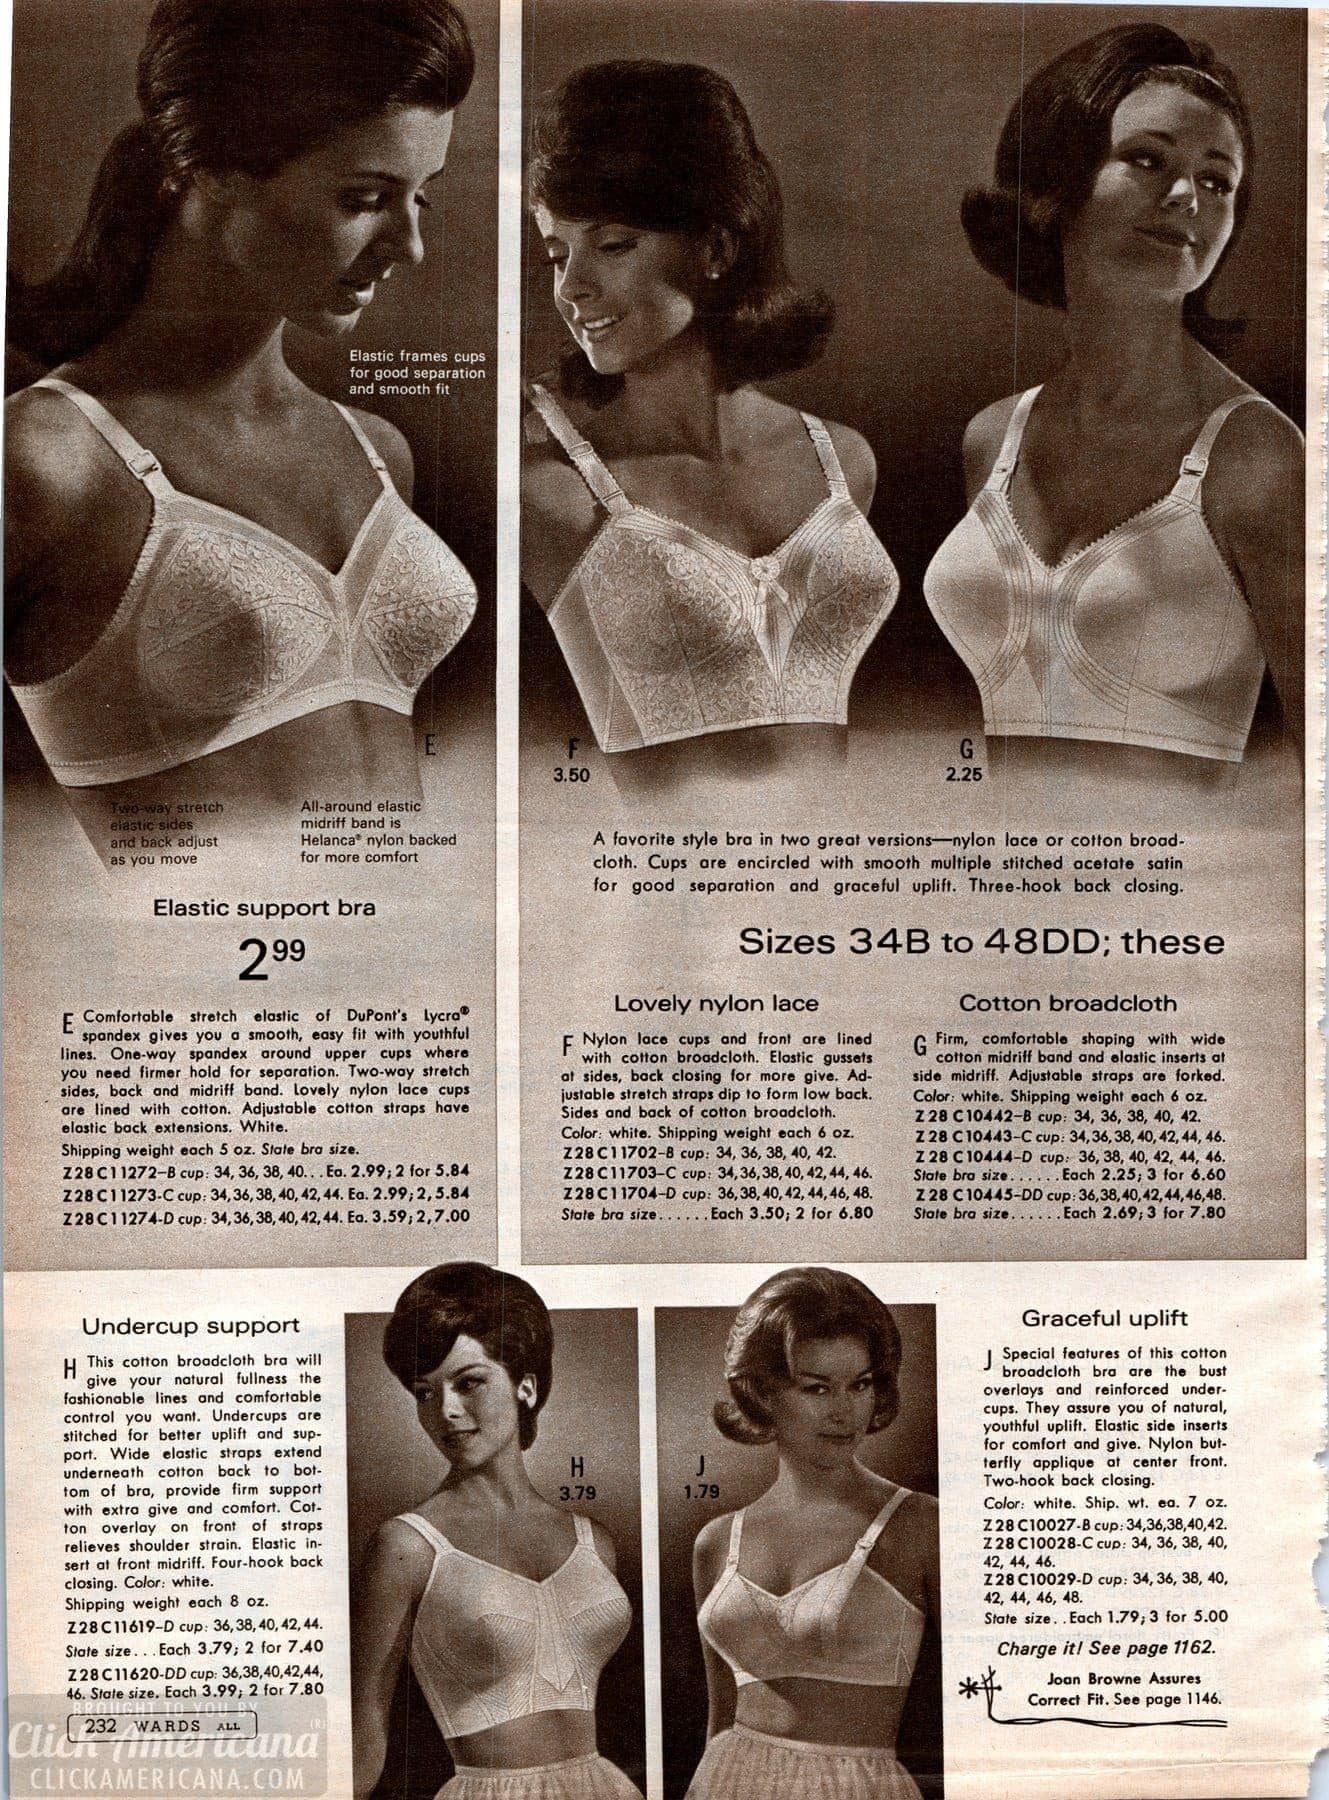 Vintage bra styles from 1968 - Wards catalog